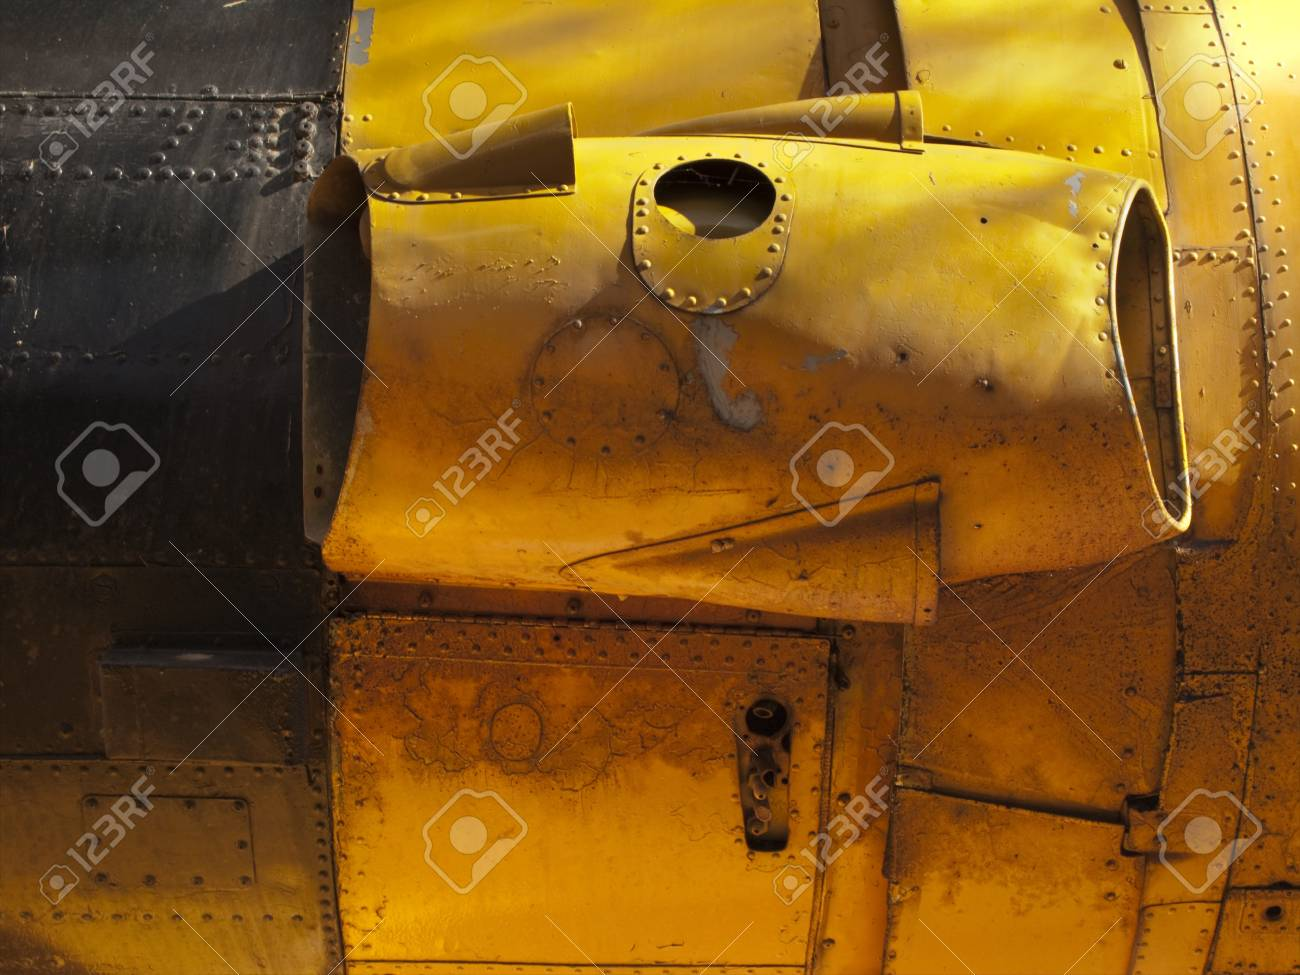 Engine detail of old airplane. Stock Photo - 4144199